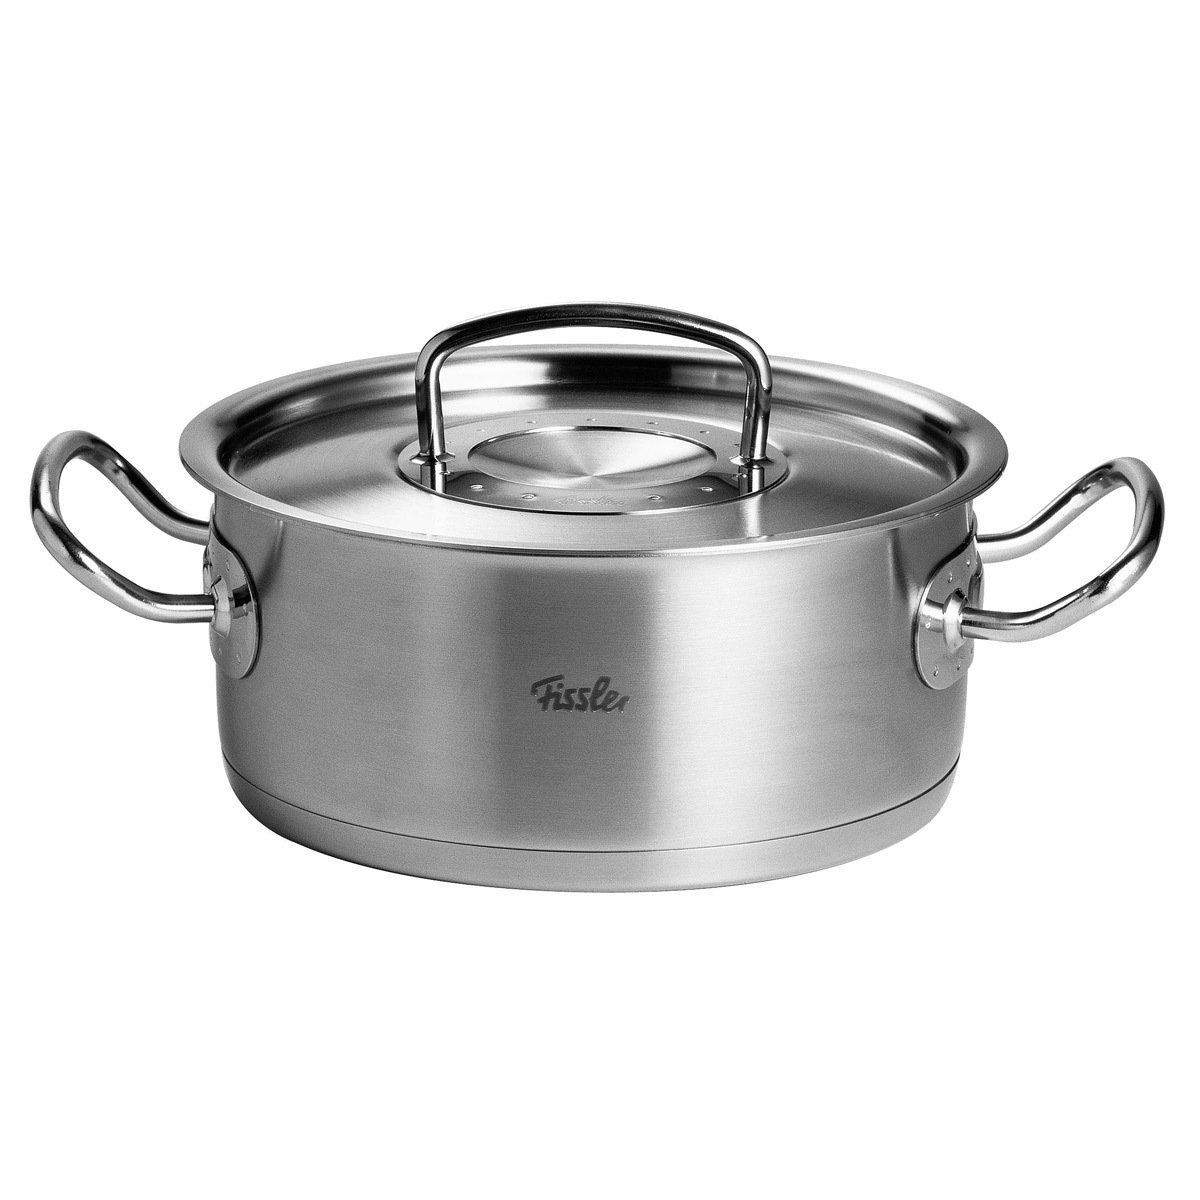 Fissler Original-Profi Collection Frying Pot, Stainless Steel 18/10, Induction Suitable, Ø 28 cm Fissler GmbH